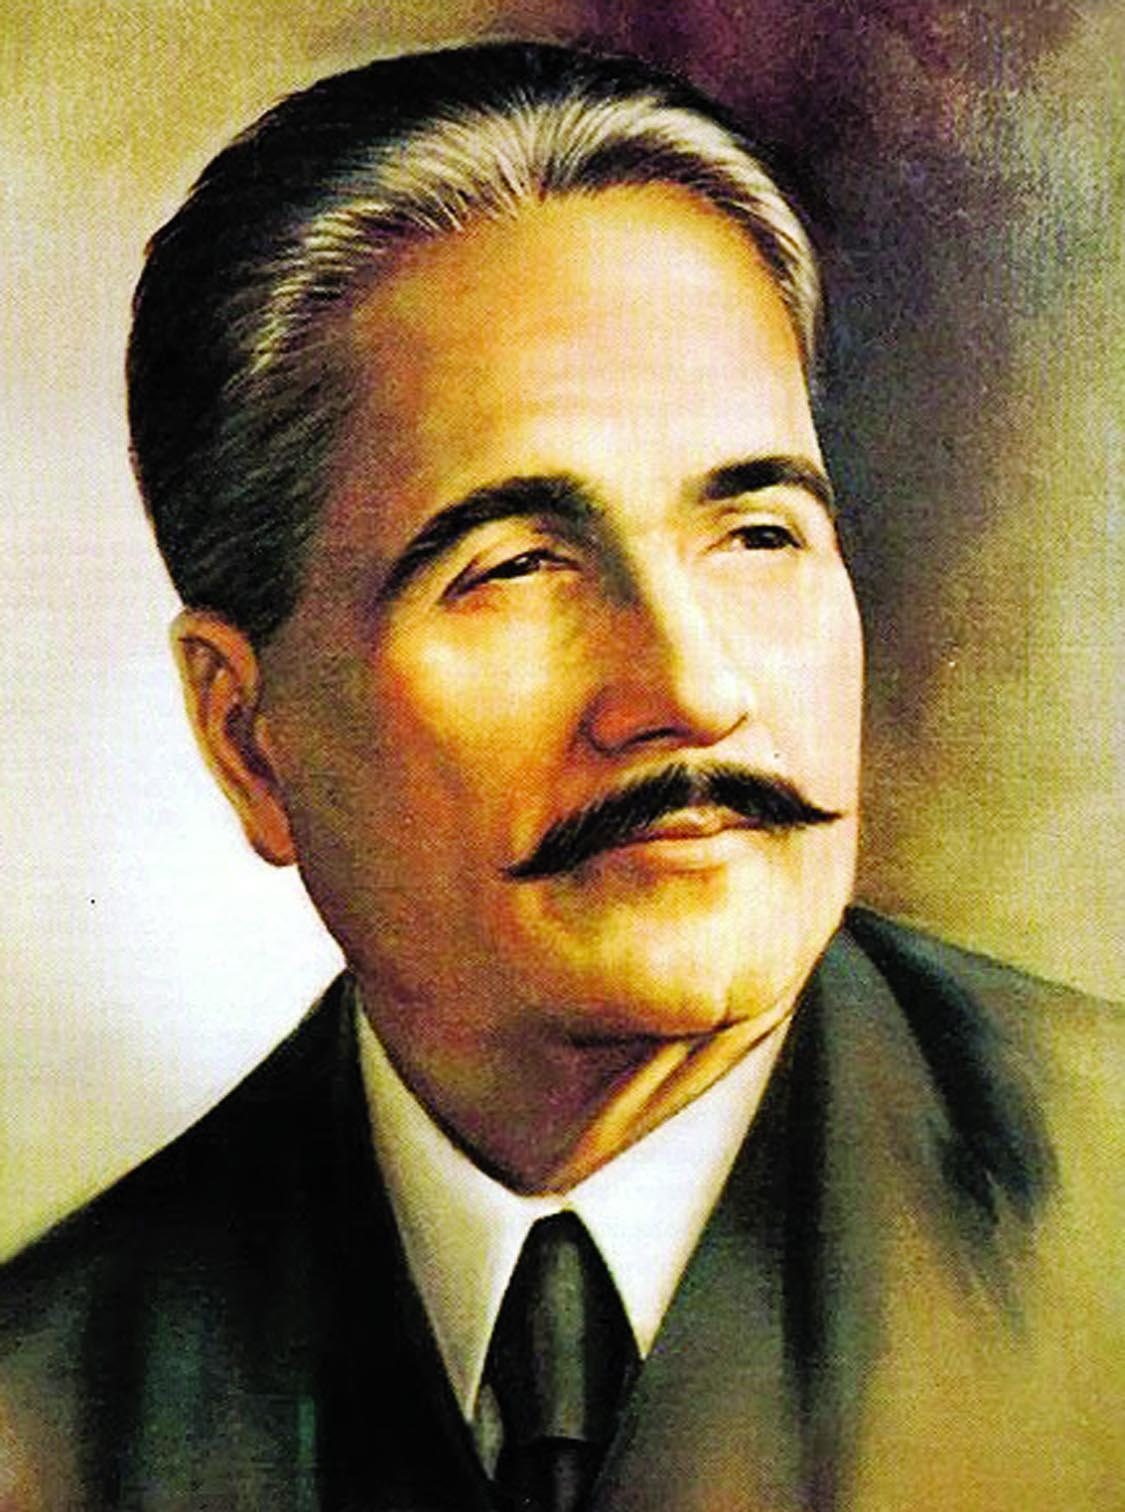 allama mohammad iqbal was born on Muhammad iqbal (urdu: محمد اِقبال    ) (november 9, 1877 – april 21, 1938),  widely known as allama iqbal, was a poet, philosopher and politician,  iqbal  was born on 9 november 1877 in an ethnic kashmiri family in gujrat within the  punjab.